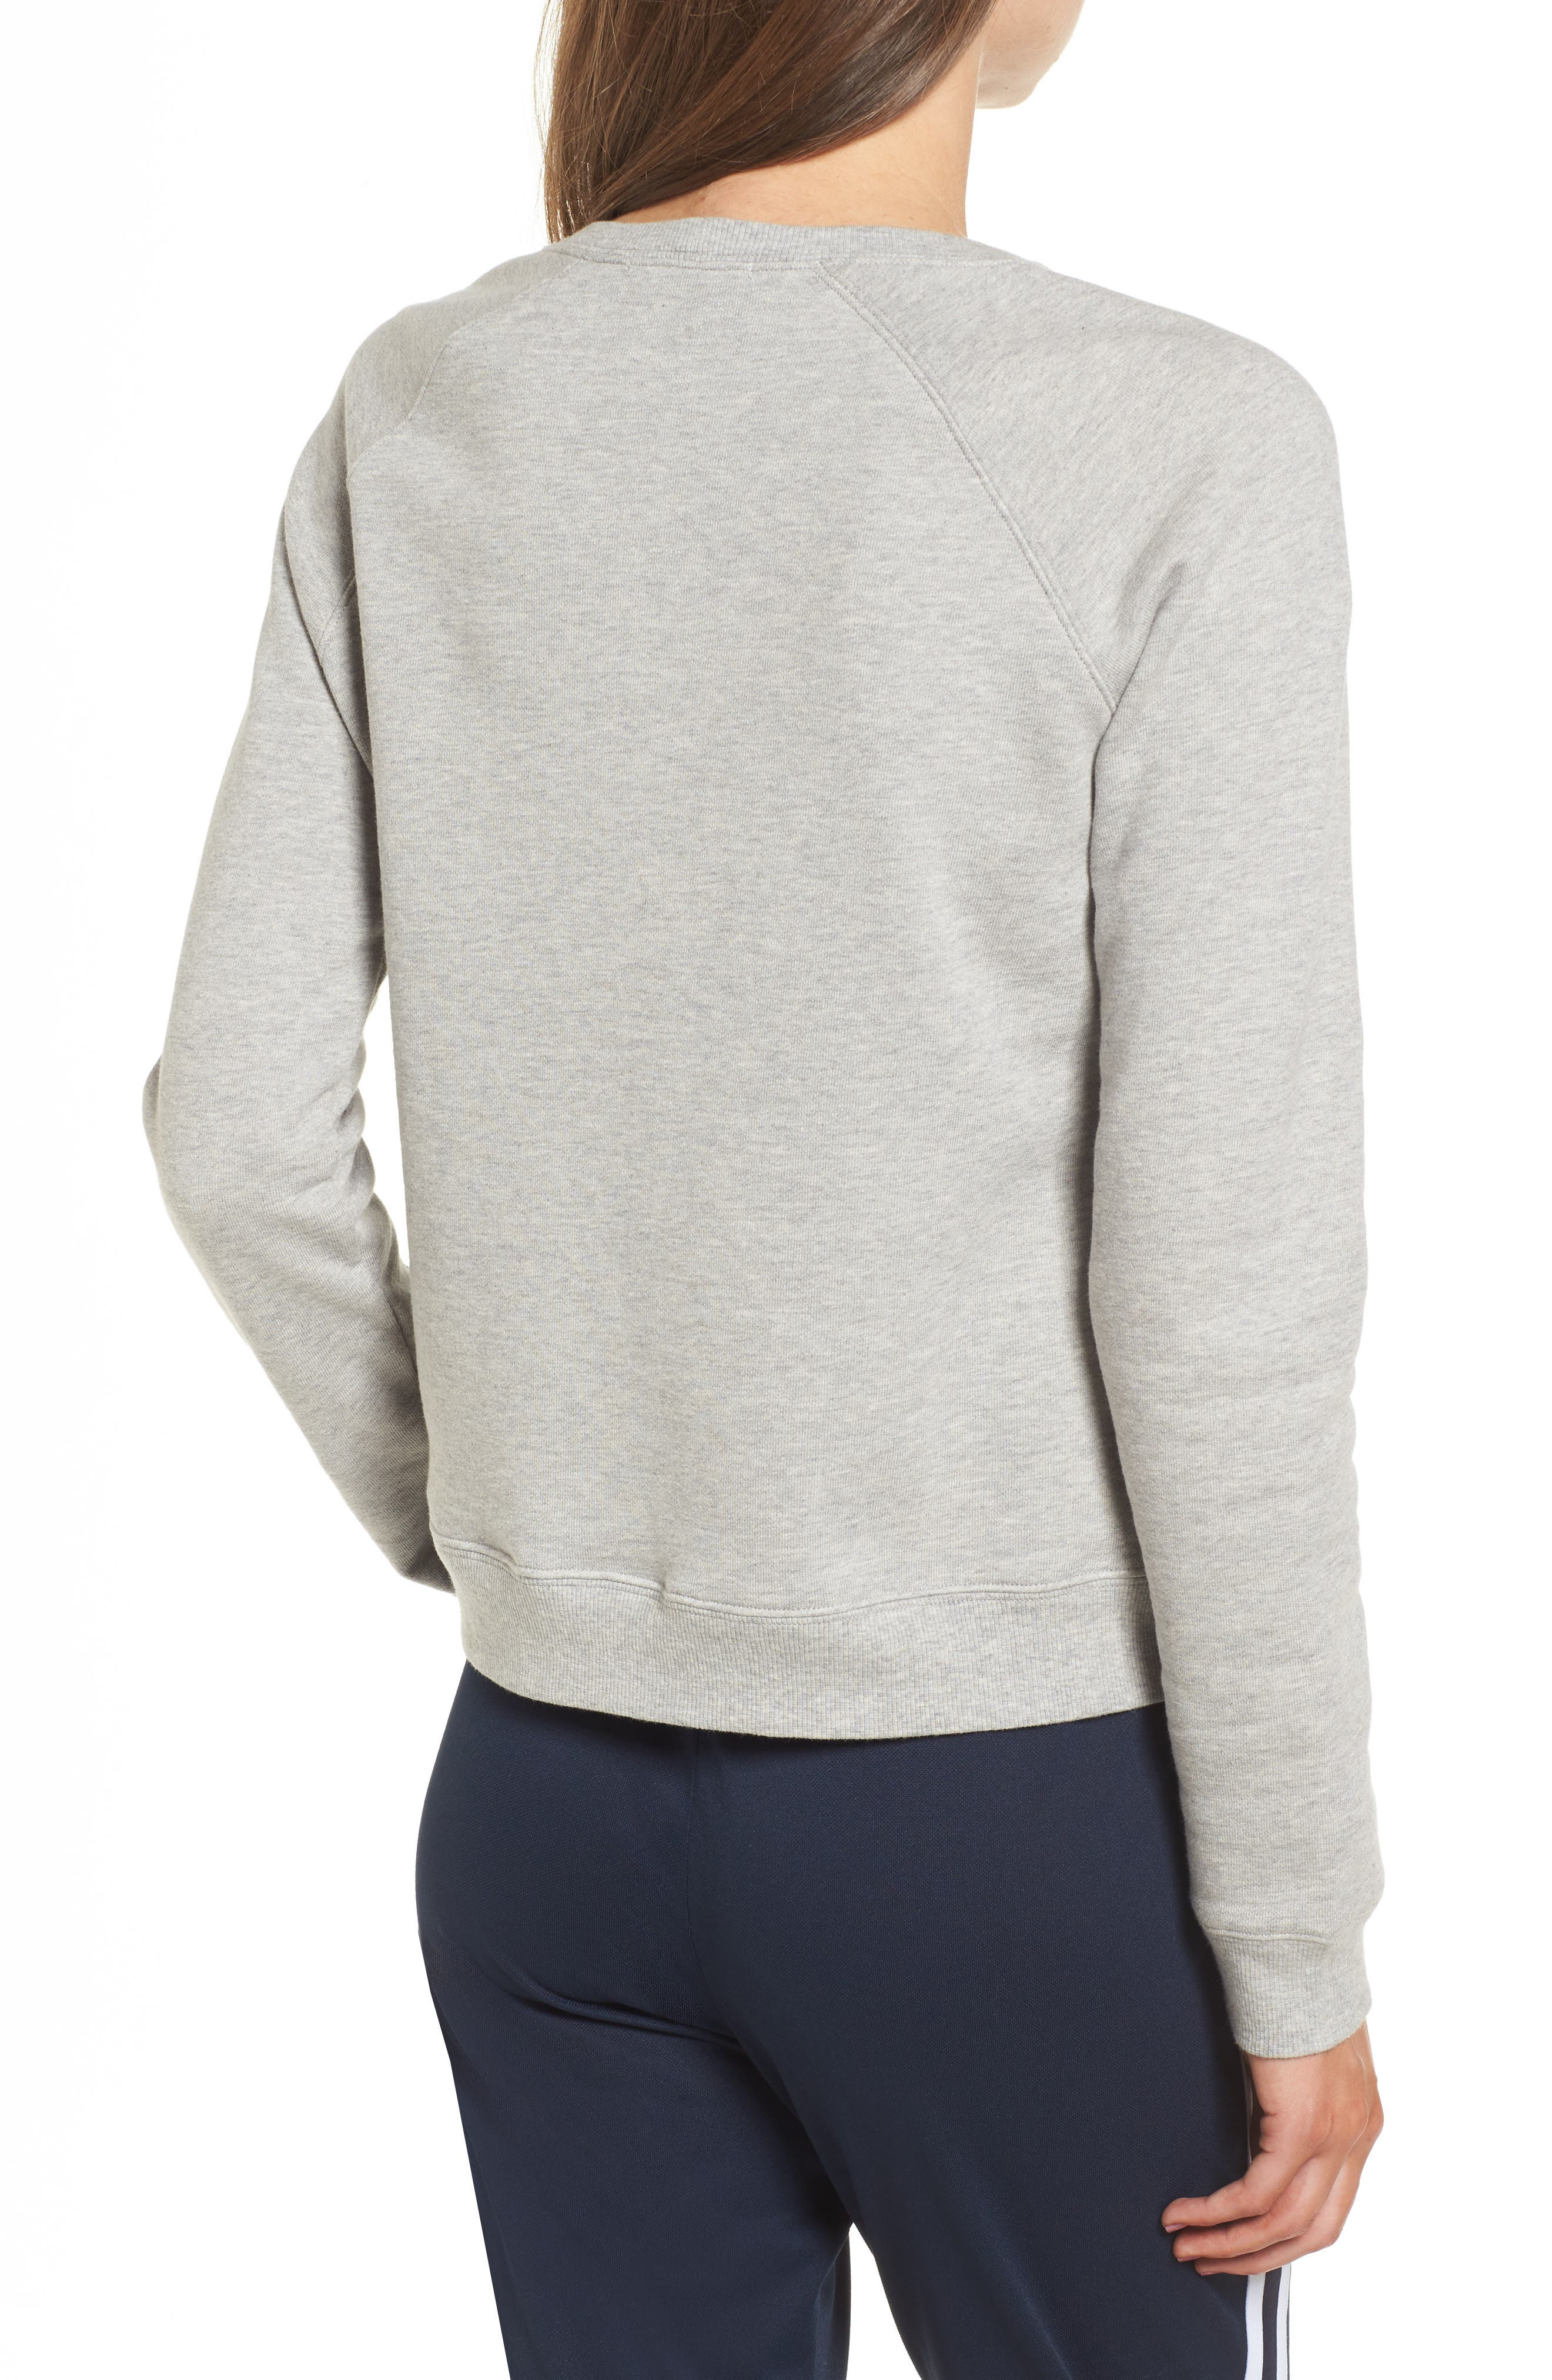 Out of Office Sweatshirt,                             Alternate thumbnail 2, color,                             039